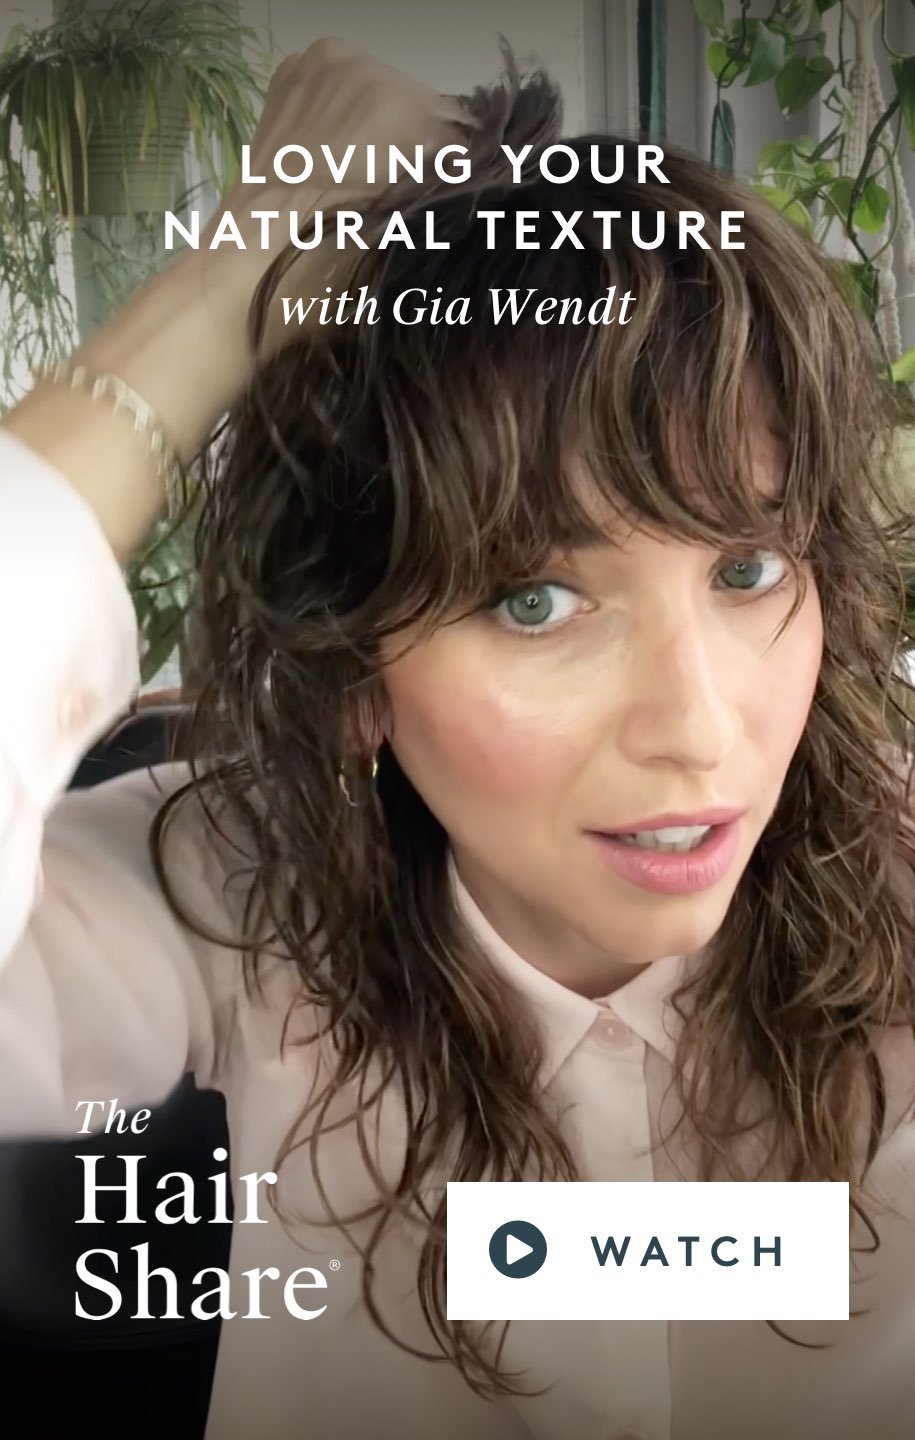 Loving Your Natural Texture with Gia Wendt